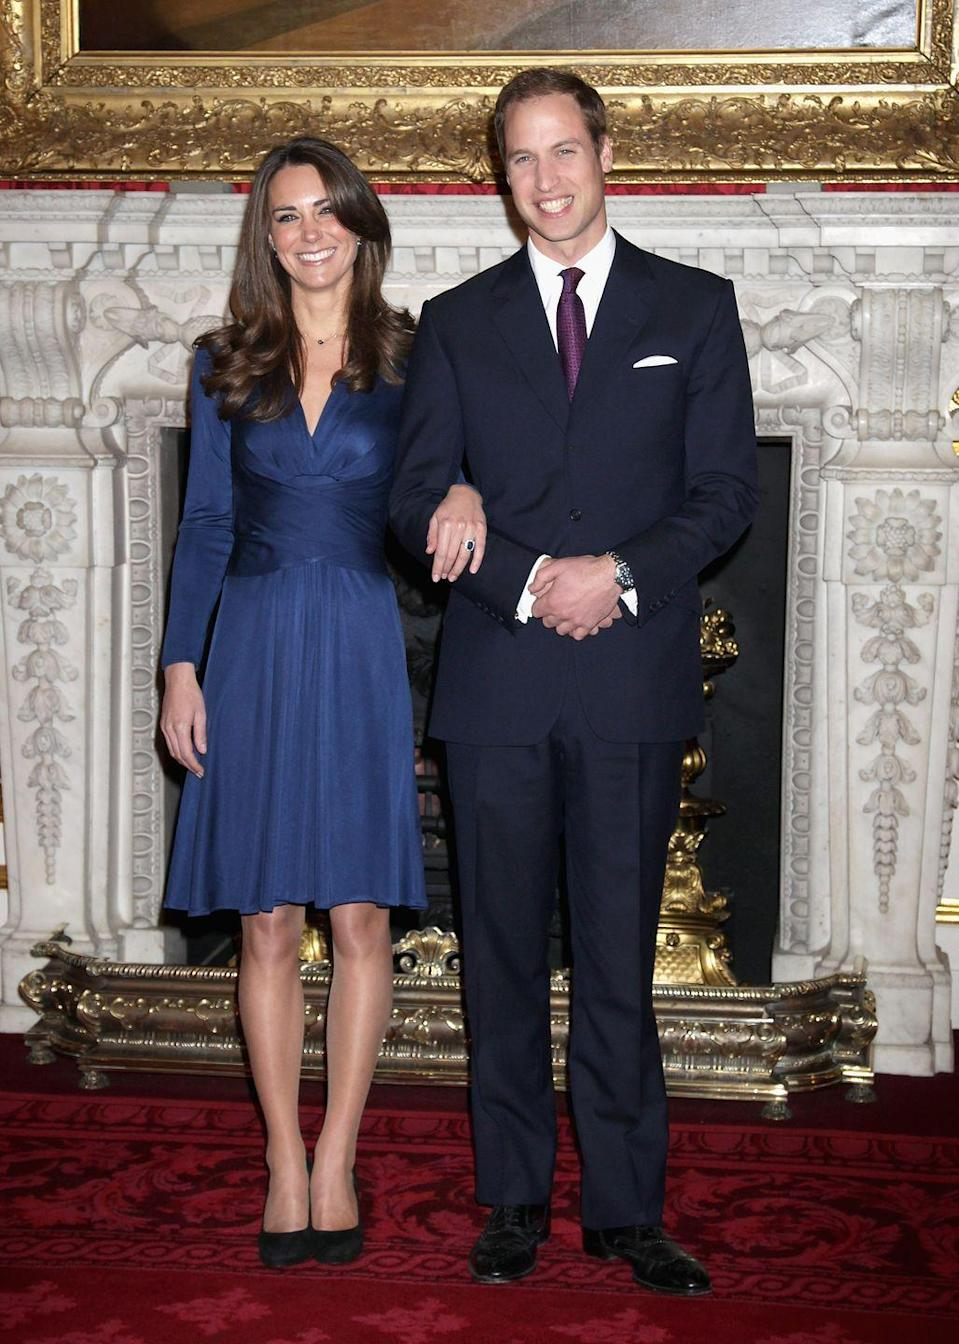 <p>When Prince William and Kate announced their engagement on 10 November 2010, it was the moment we'd all been waiting for. The couple looked relaxed and happy as they posed for cameras, with Catherine sporting that gorgeous blue sapphire engagement ring that was originally Princess Diana's.</p>